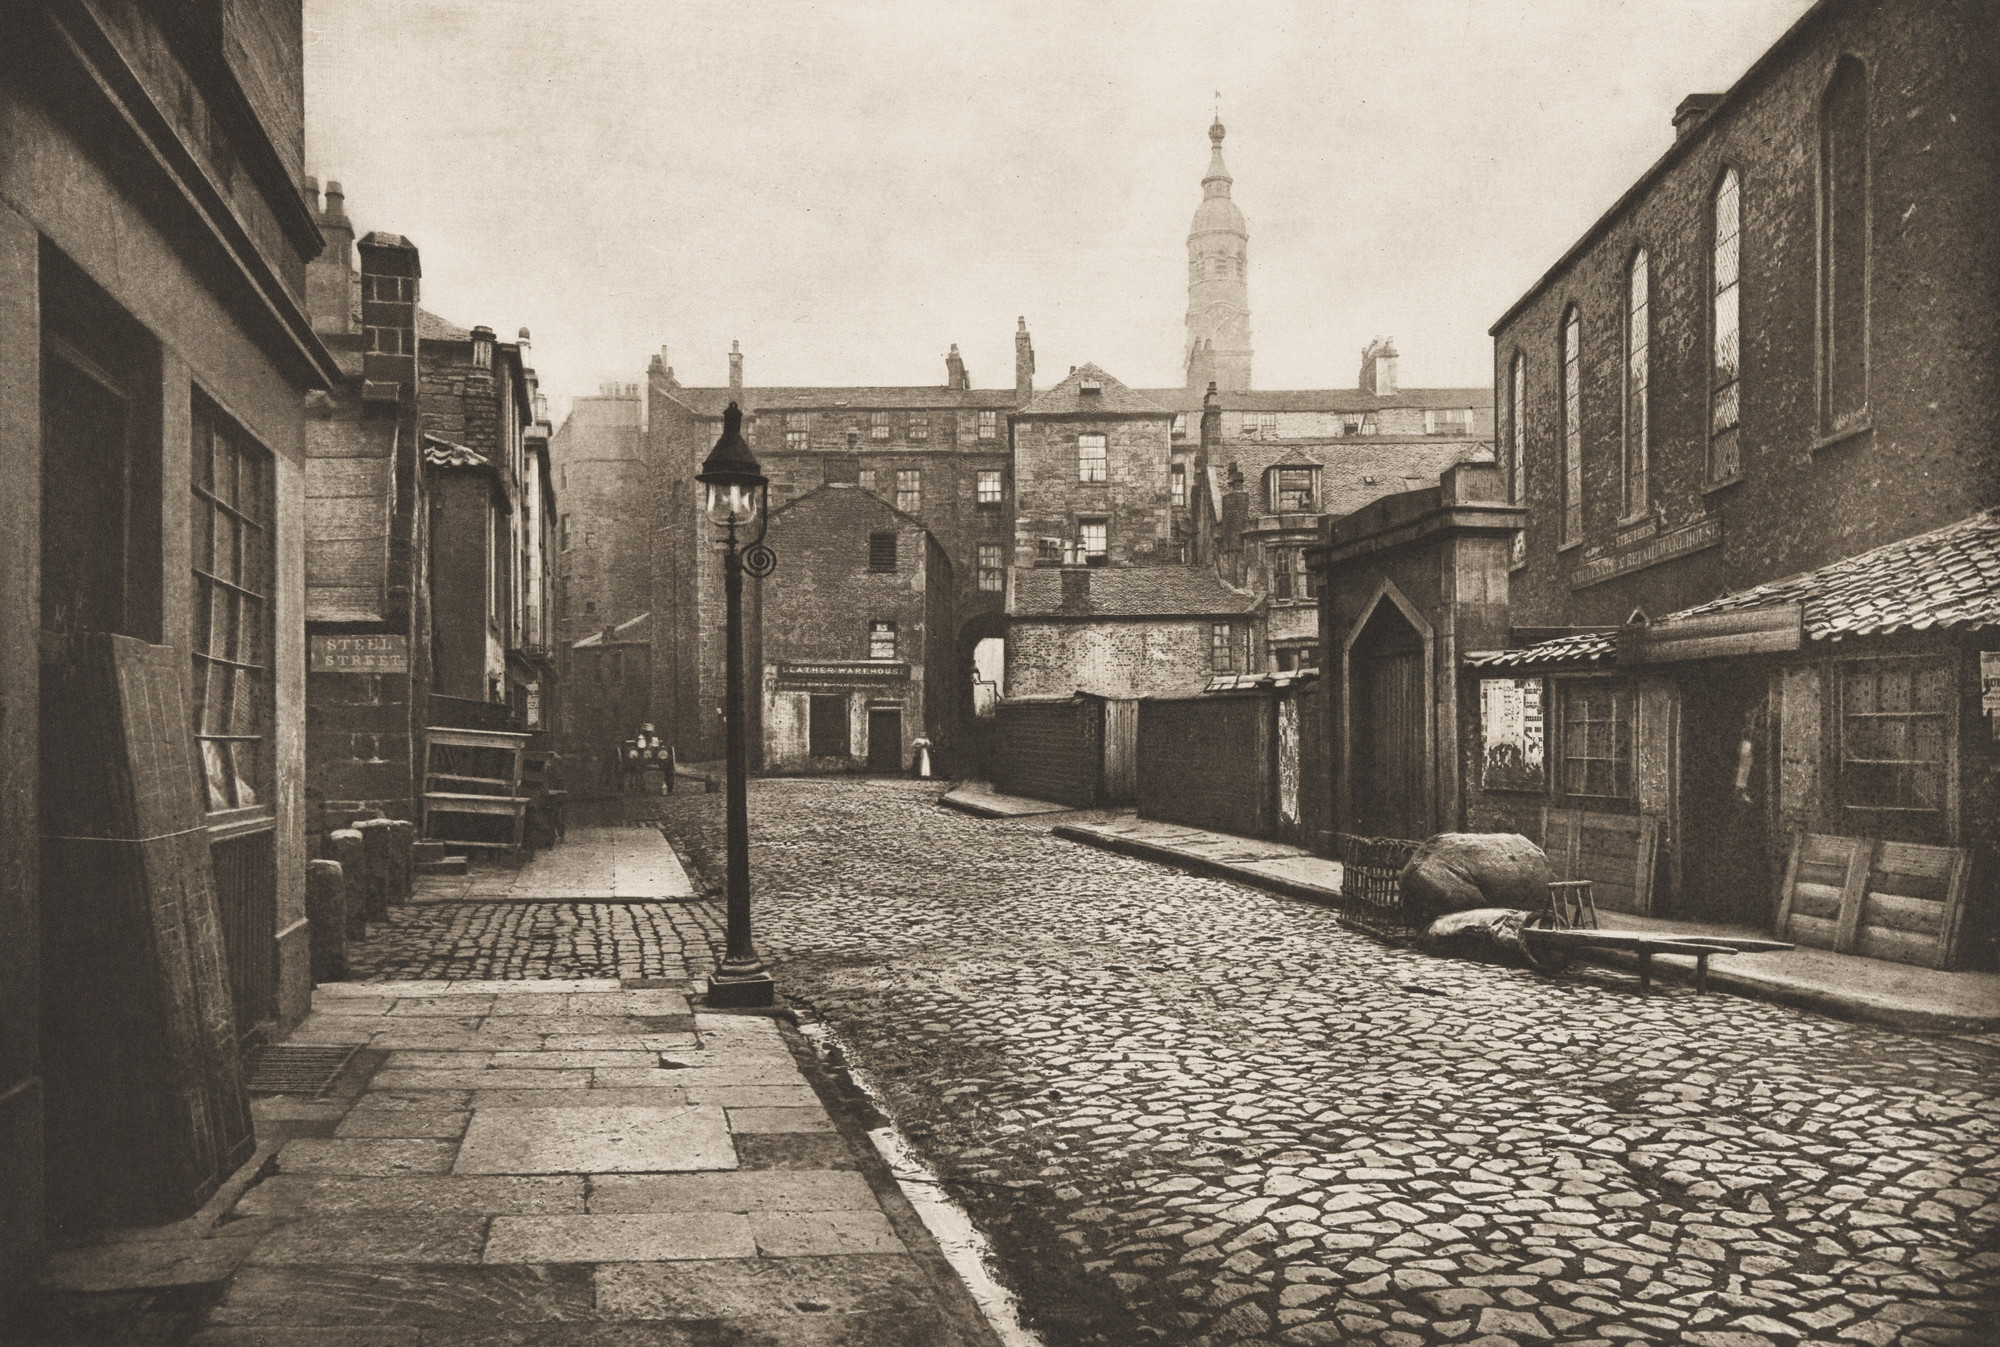 Thomas Annan. Low Green Street. 1868